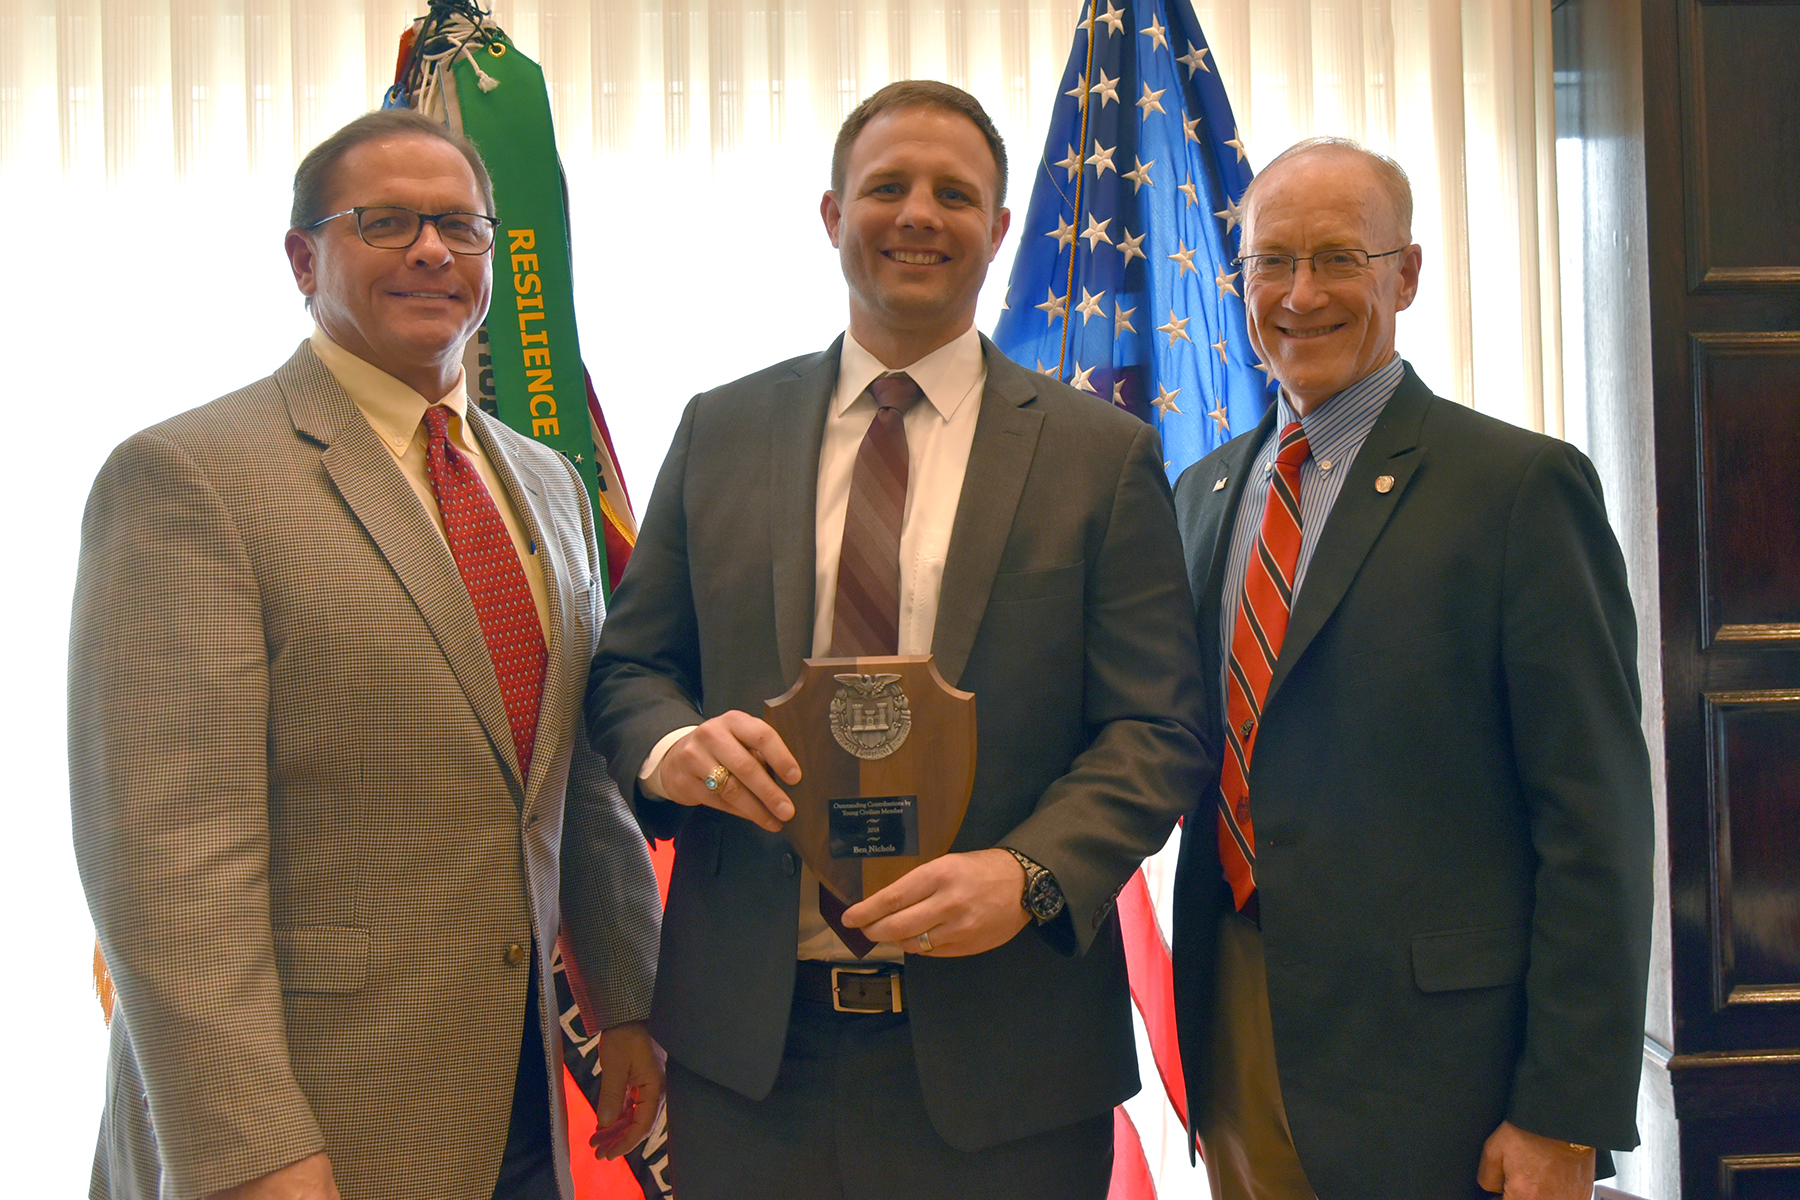 Project Executive Ben Nichols Receives Award